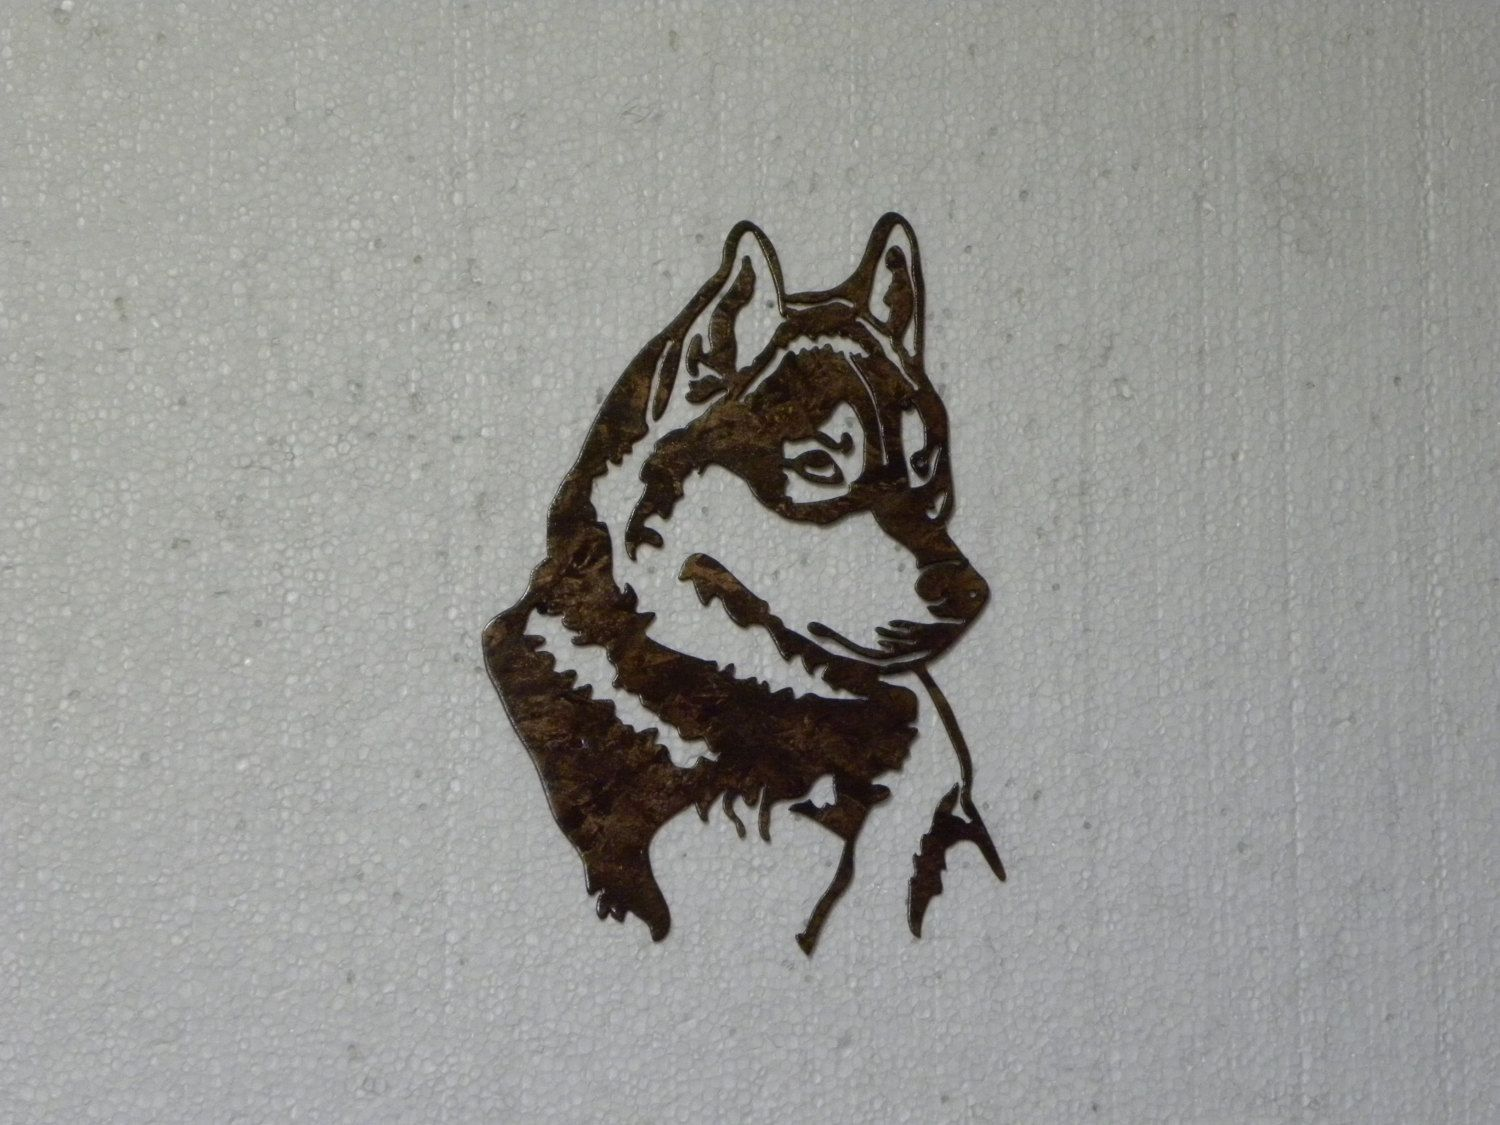 Hand Crafted Siberian Husky Head Metal Wall Art Home Decor By Say It All On The Wall